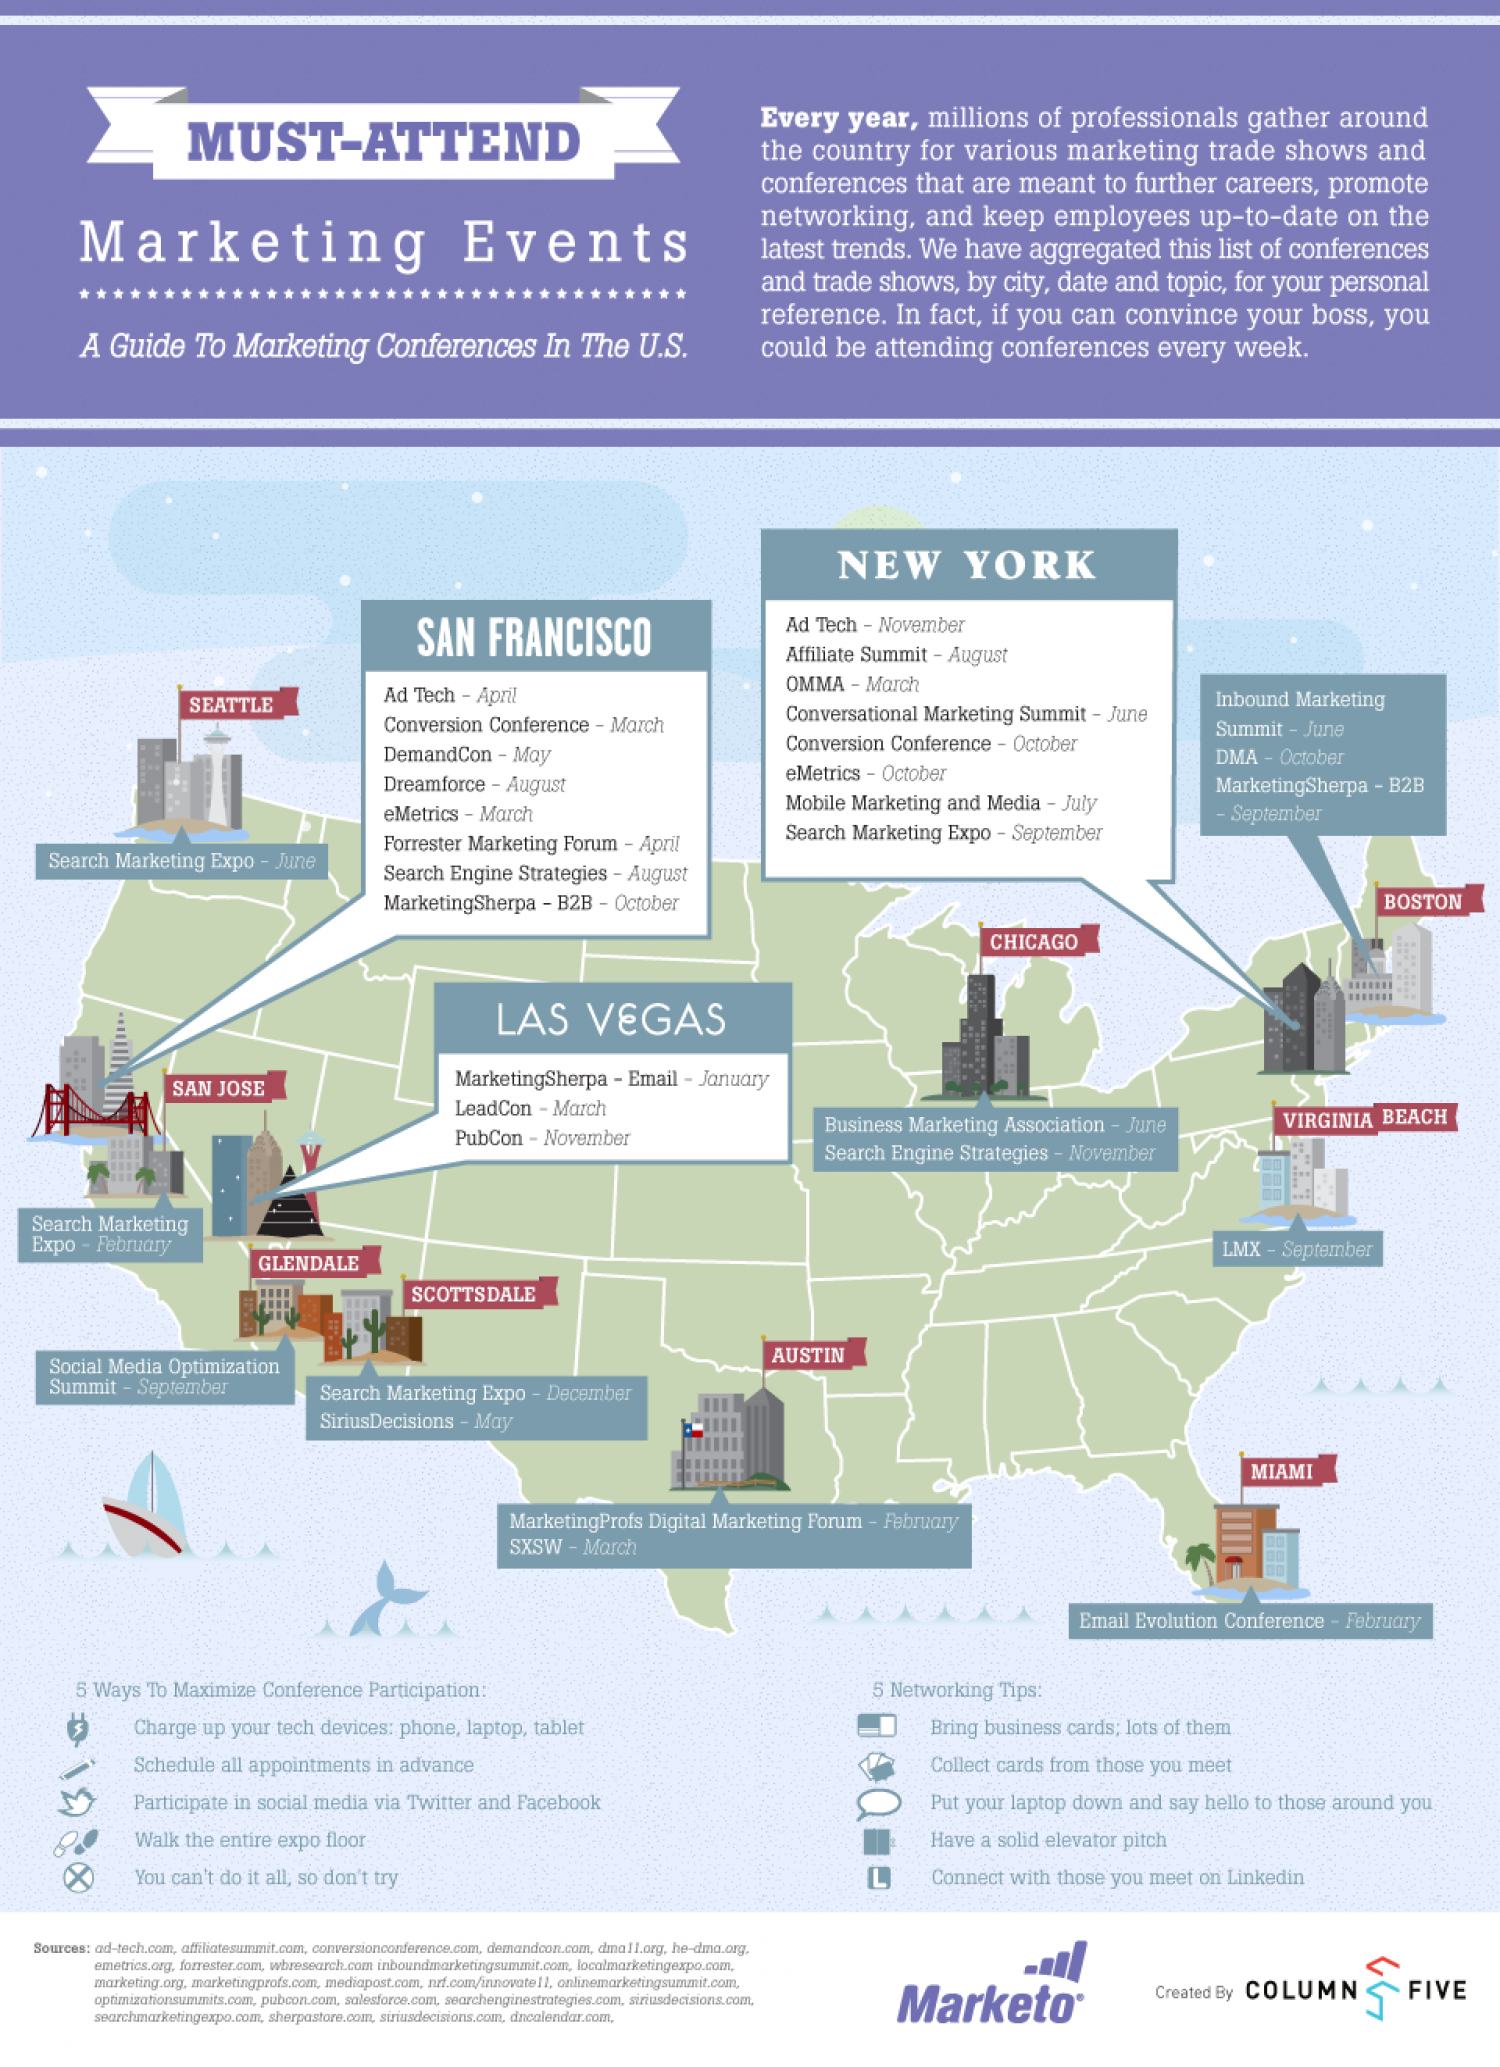 Must-Attend Marketing Events Infographic